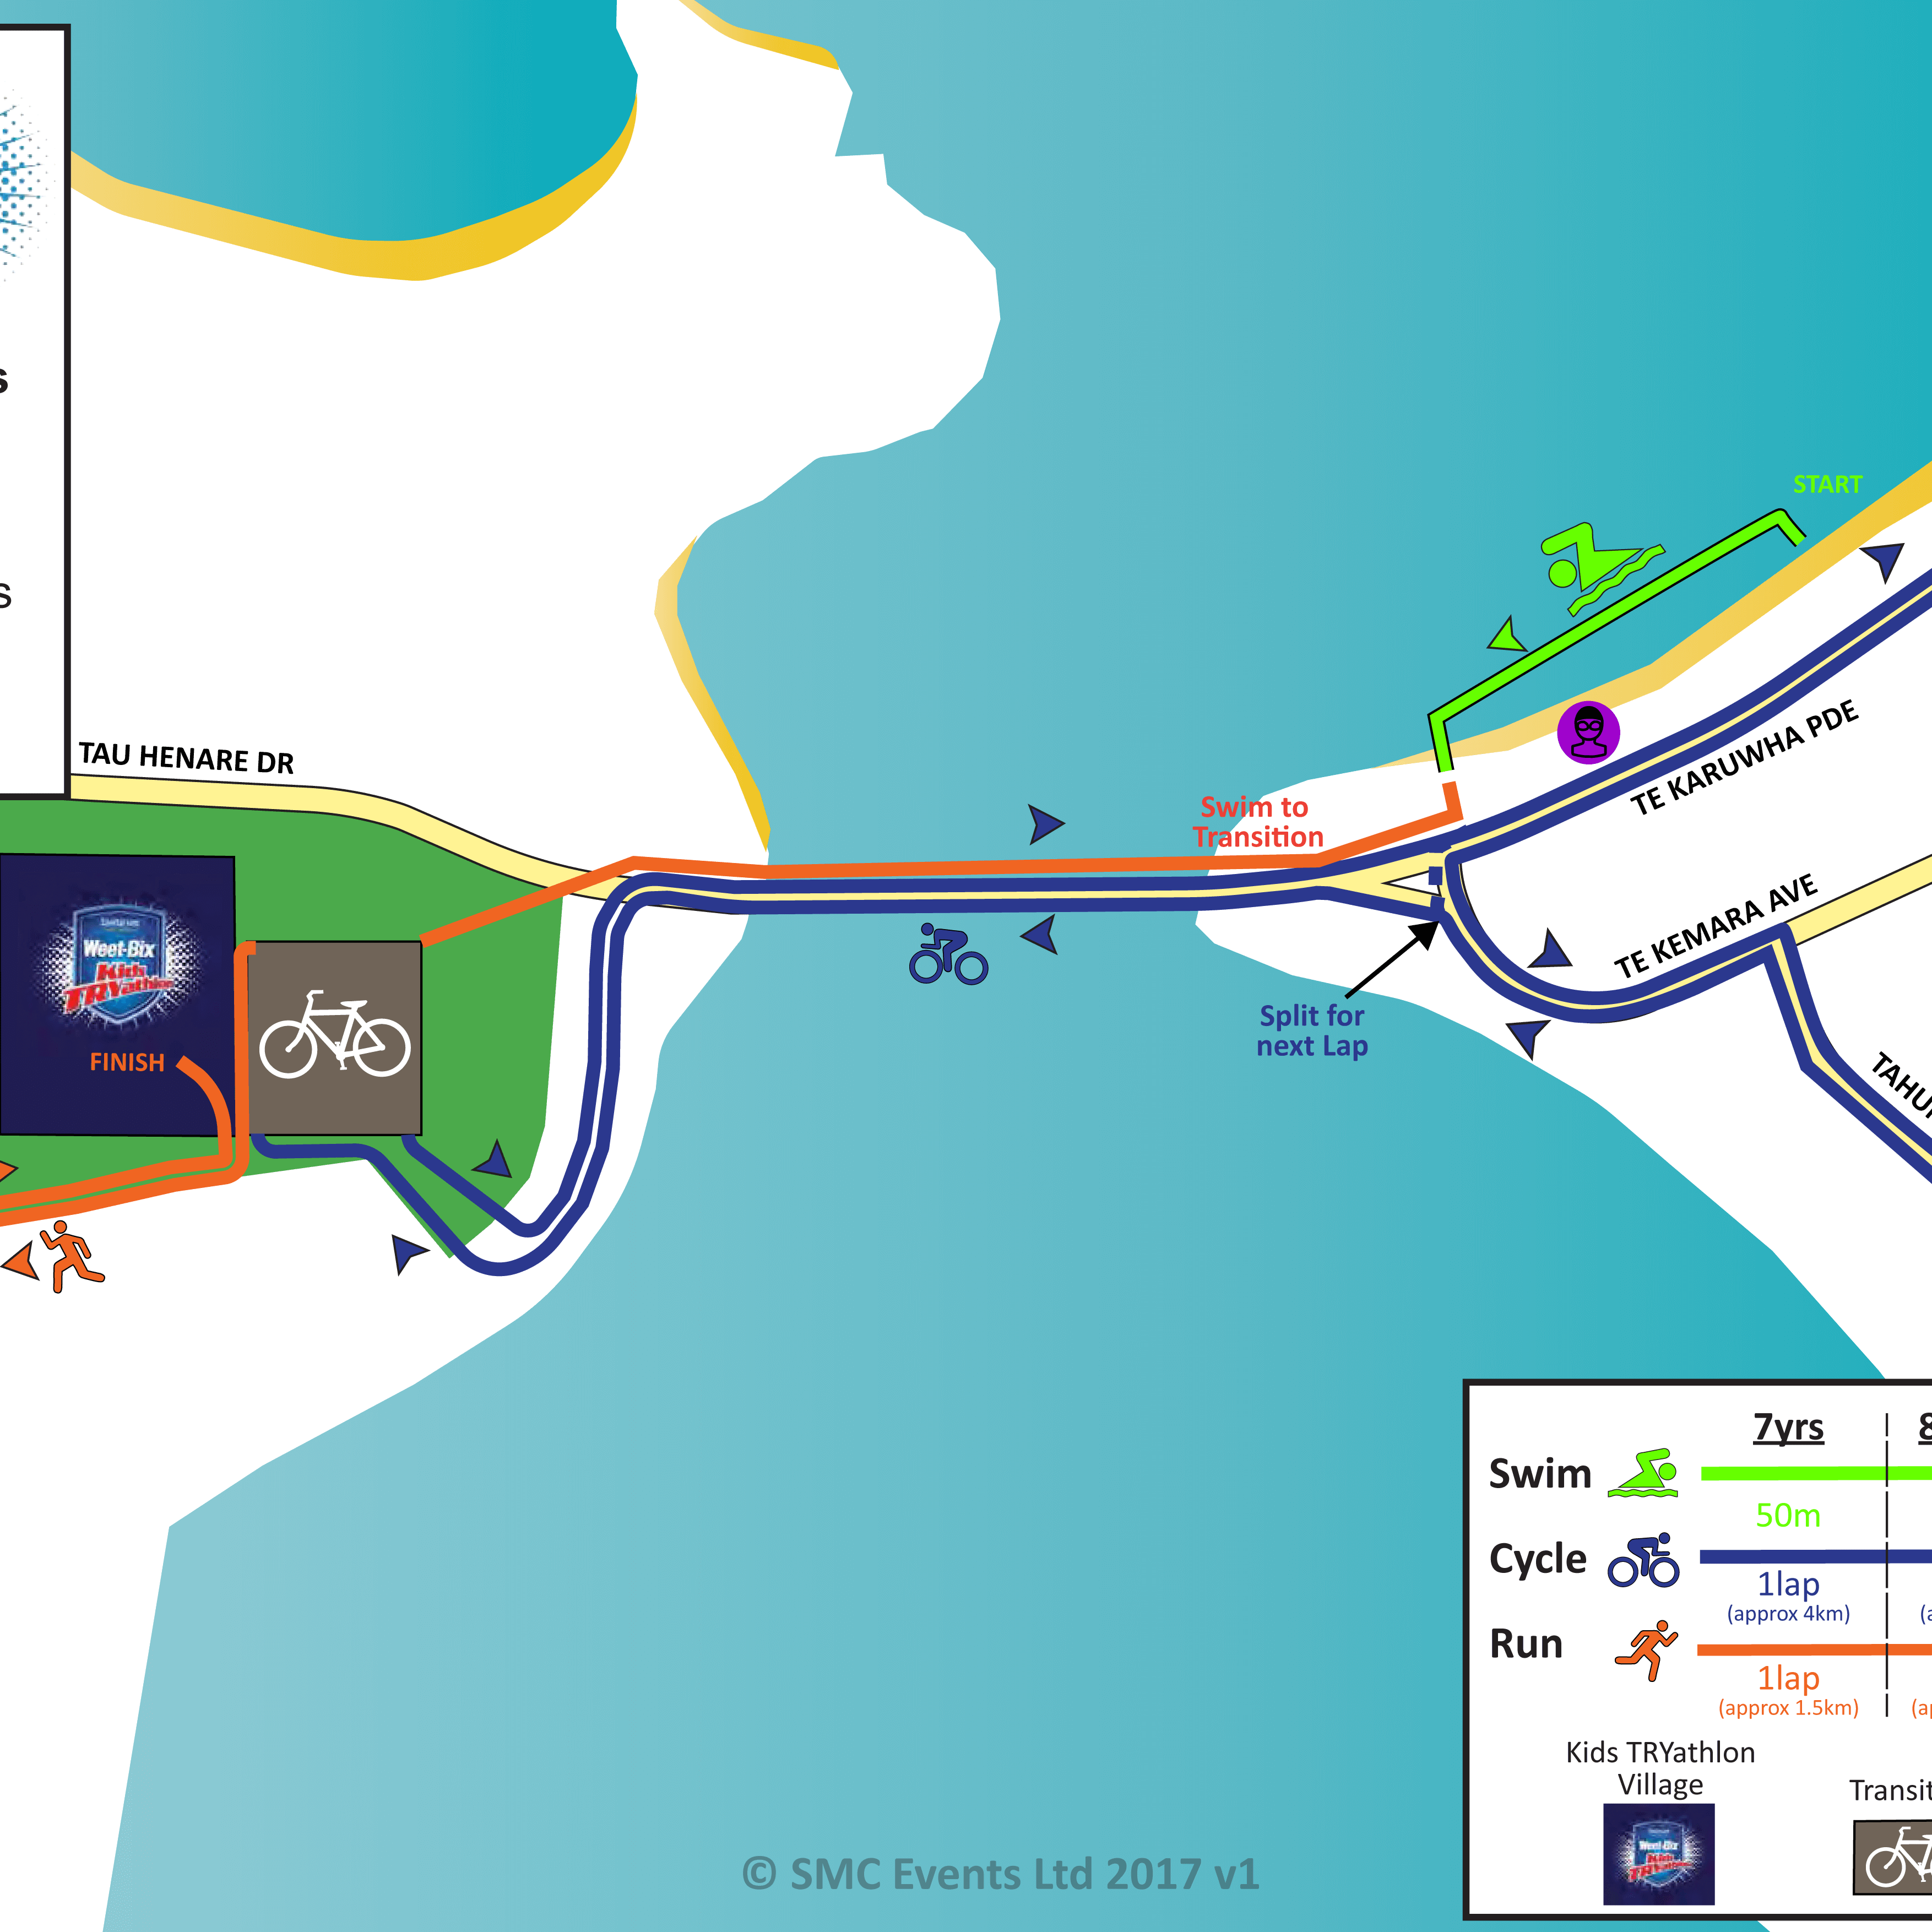 SWBKT Bay of Islands Course Map 2017